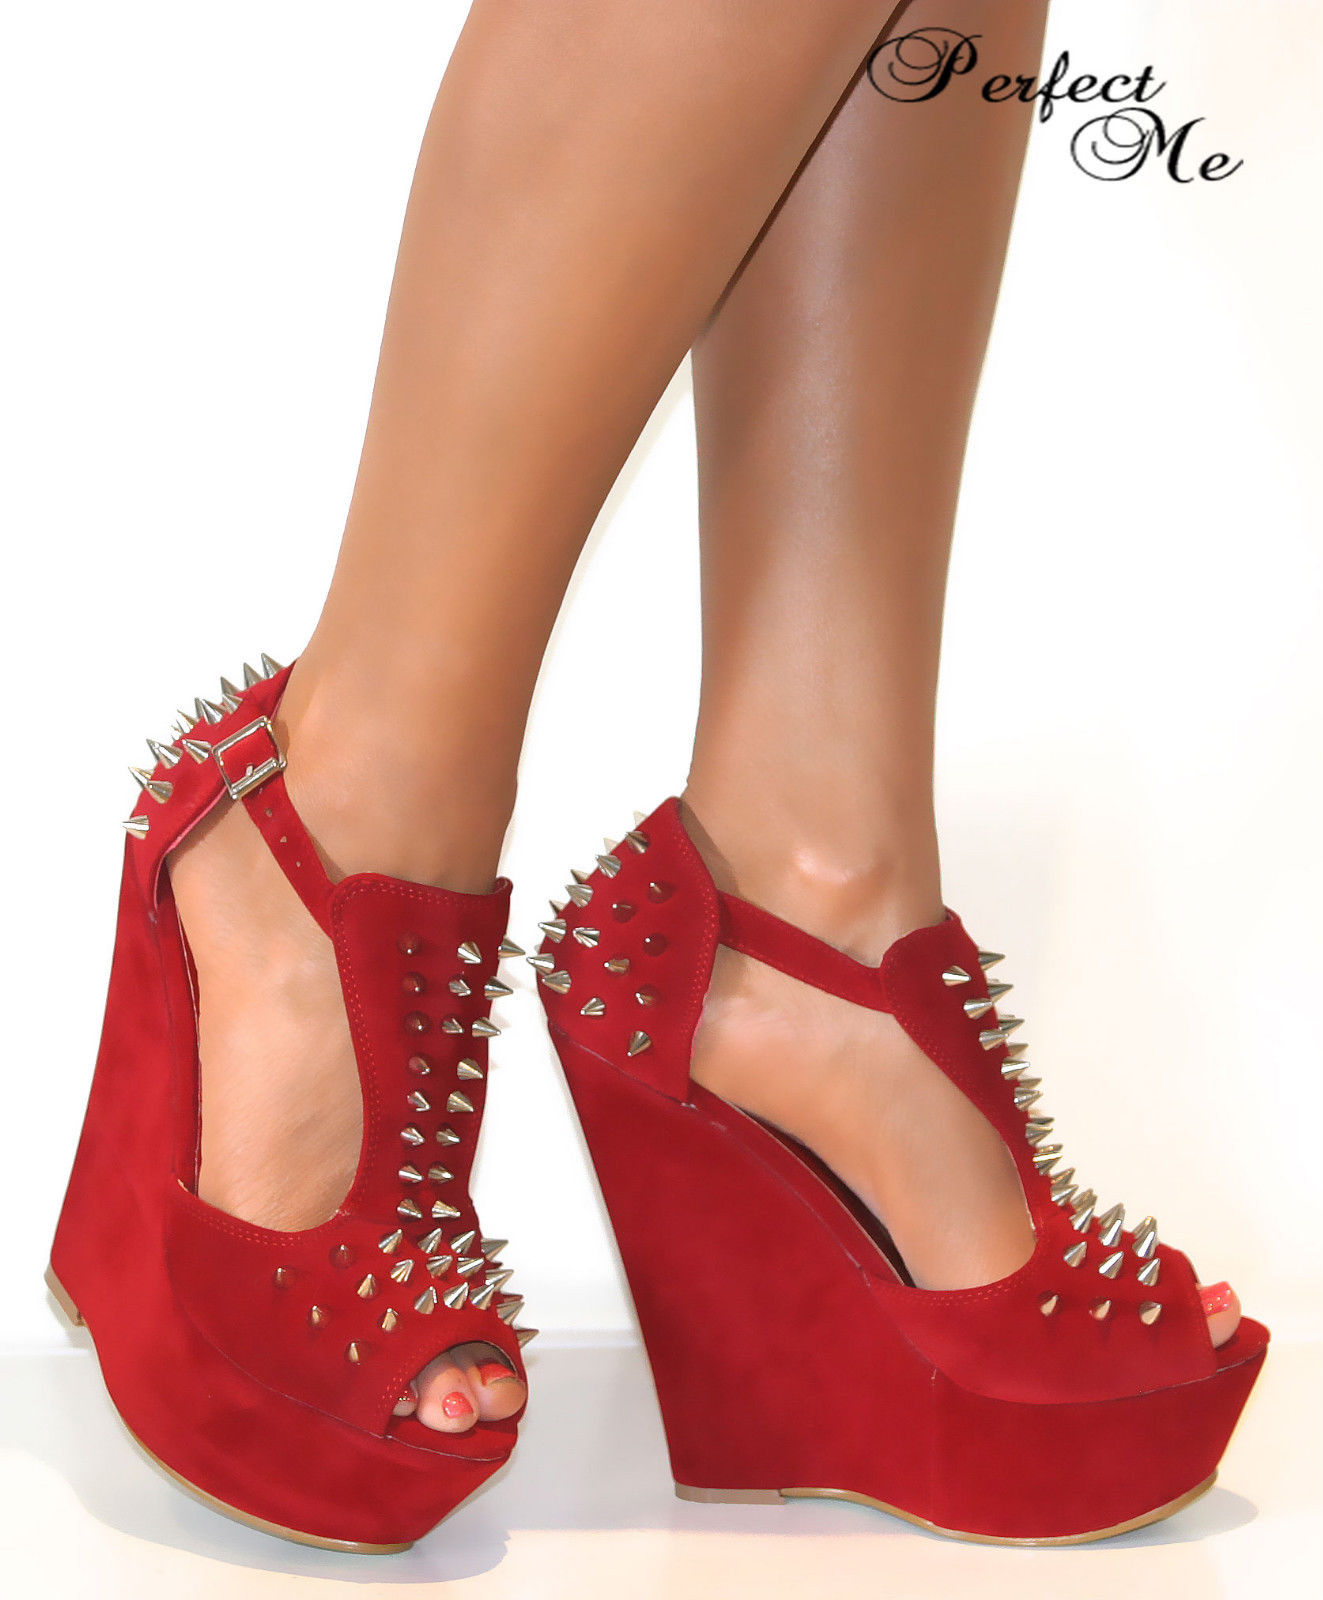 LADIES-BLACK-RED-HIGH-WEDGE-HEELS-PLATFORM-T-BAR-SPIKE-STUD-STUDS-PEEP-TOE-SHOE